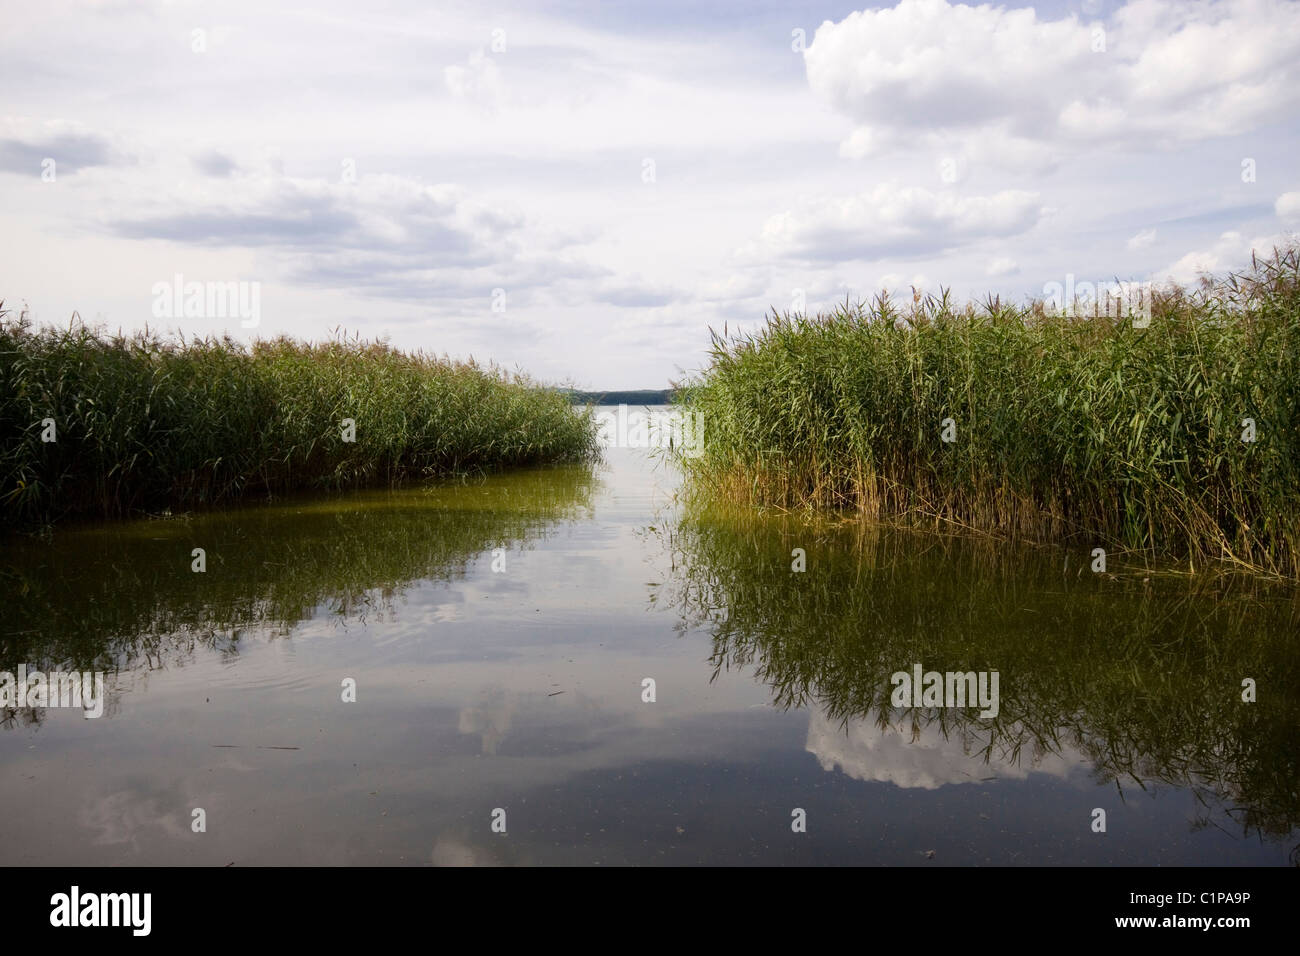 Germany, Landkreis Muritz, Muritzsee, reedbanks on lake - Stock Image